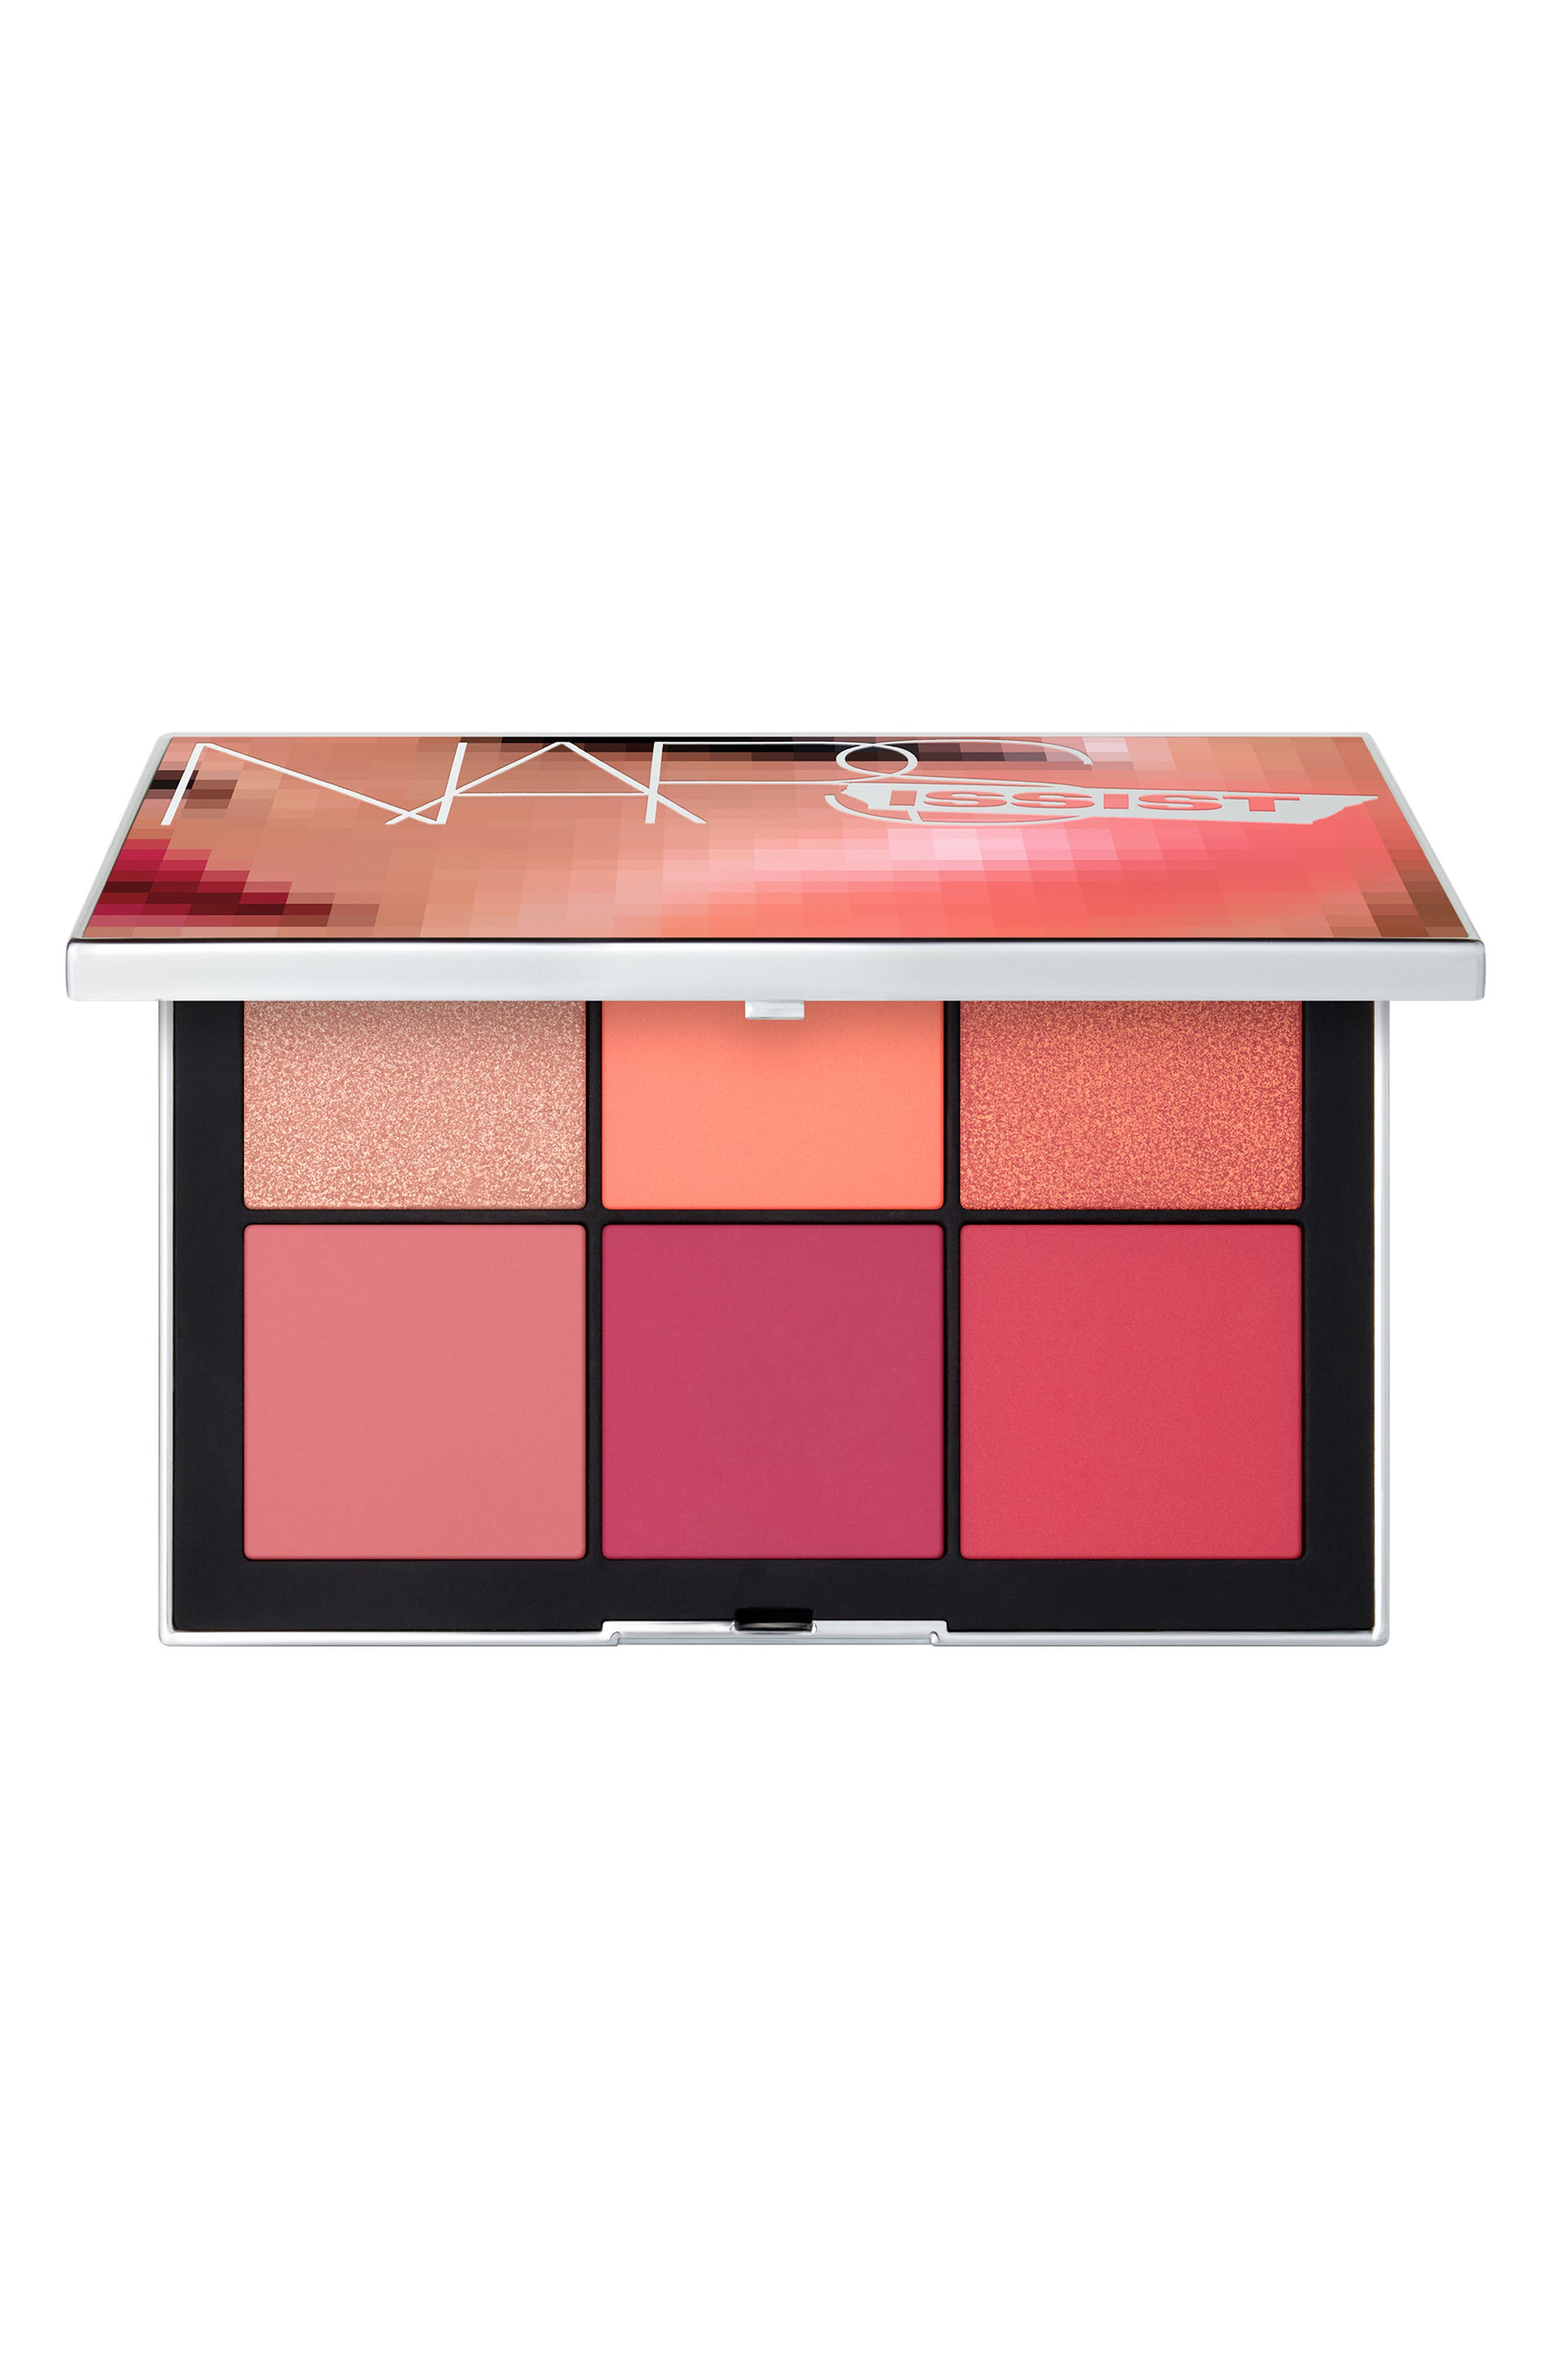 NARS NARSissist Wanted Cheek Palette II (Limited Edition) ($146 Value)